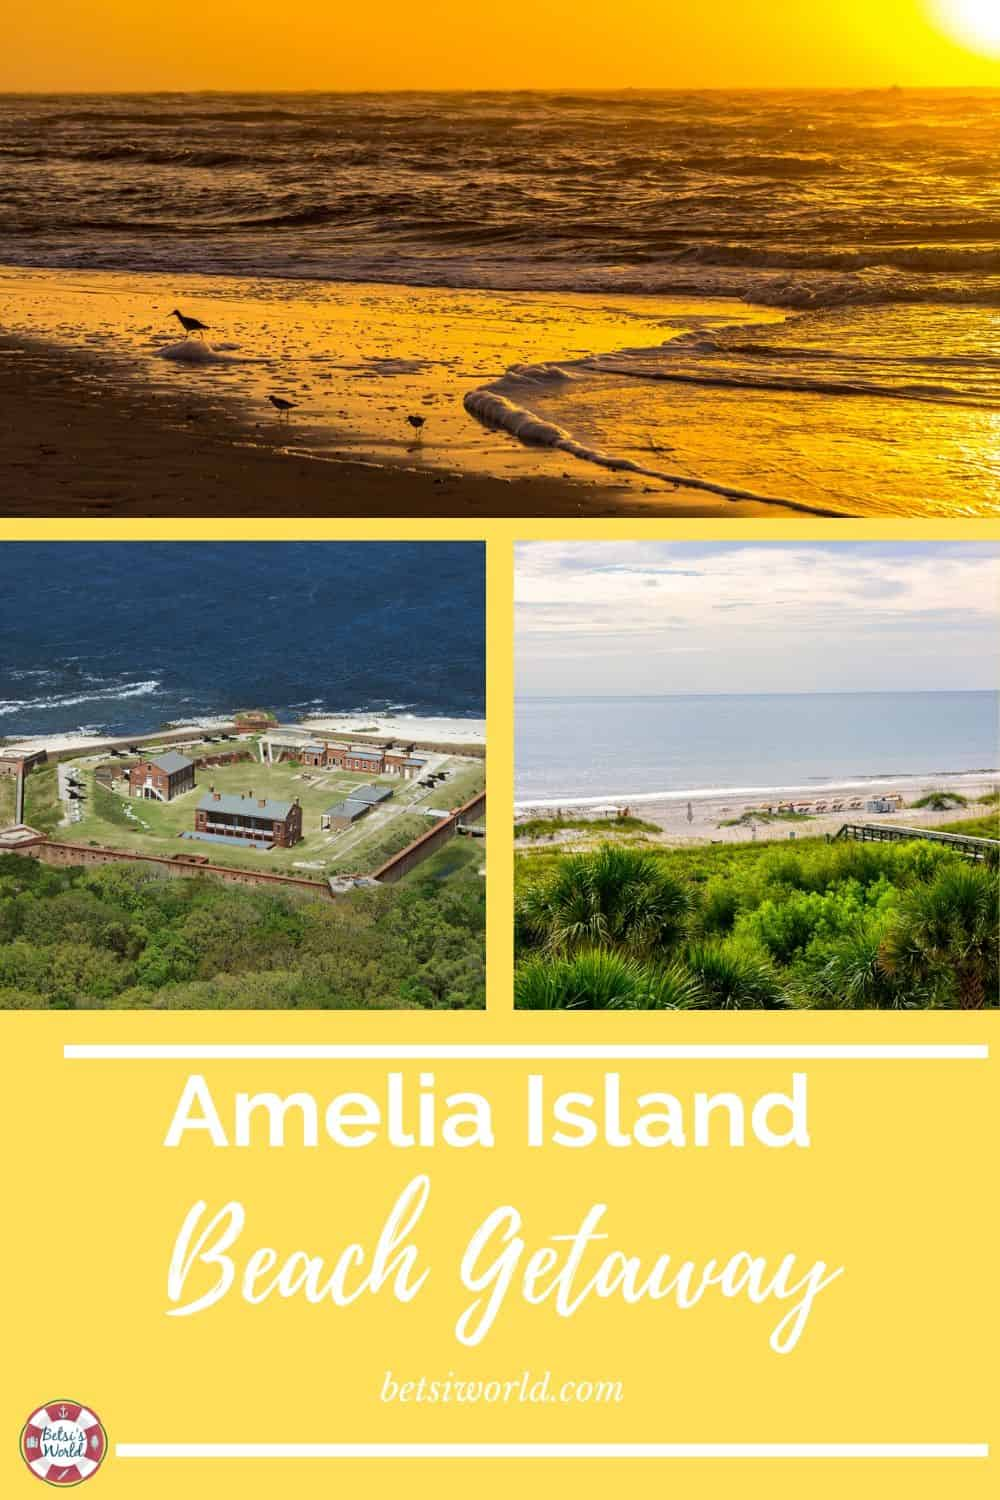 If you're looking for a romantic beach getaway in Florida, consider Amelia Island. This laid-back beach town is great for couples looking for a quick weekend away. #beachgetaway #couplesweekendgetaway #beachgetaway